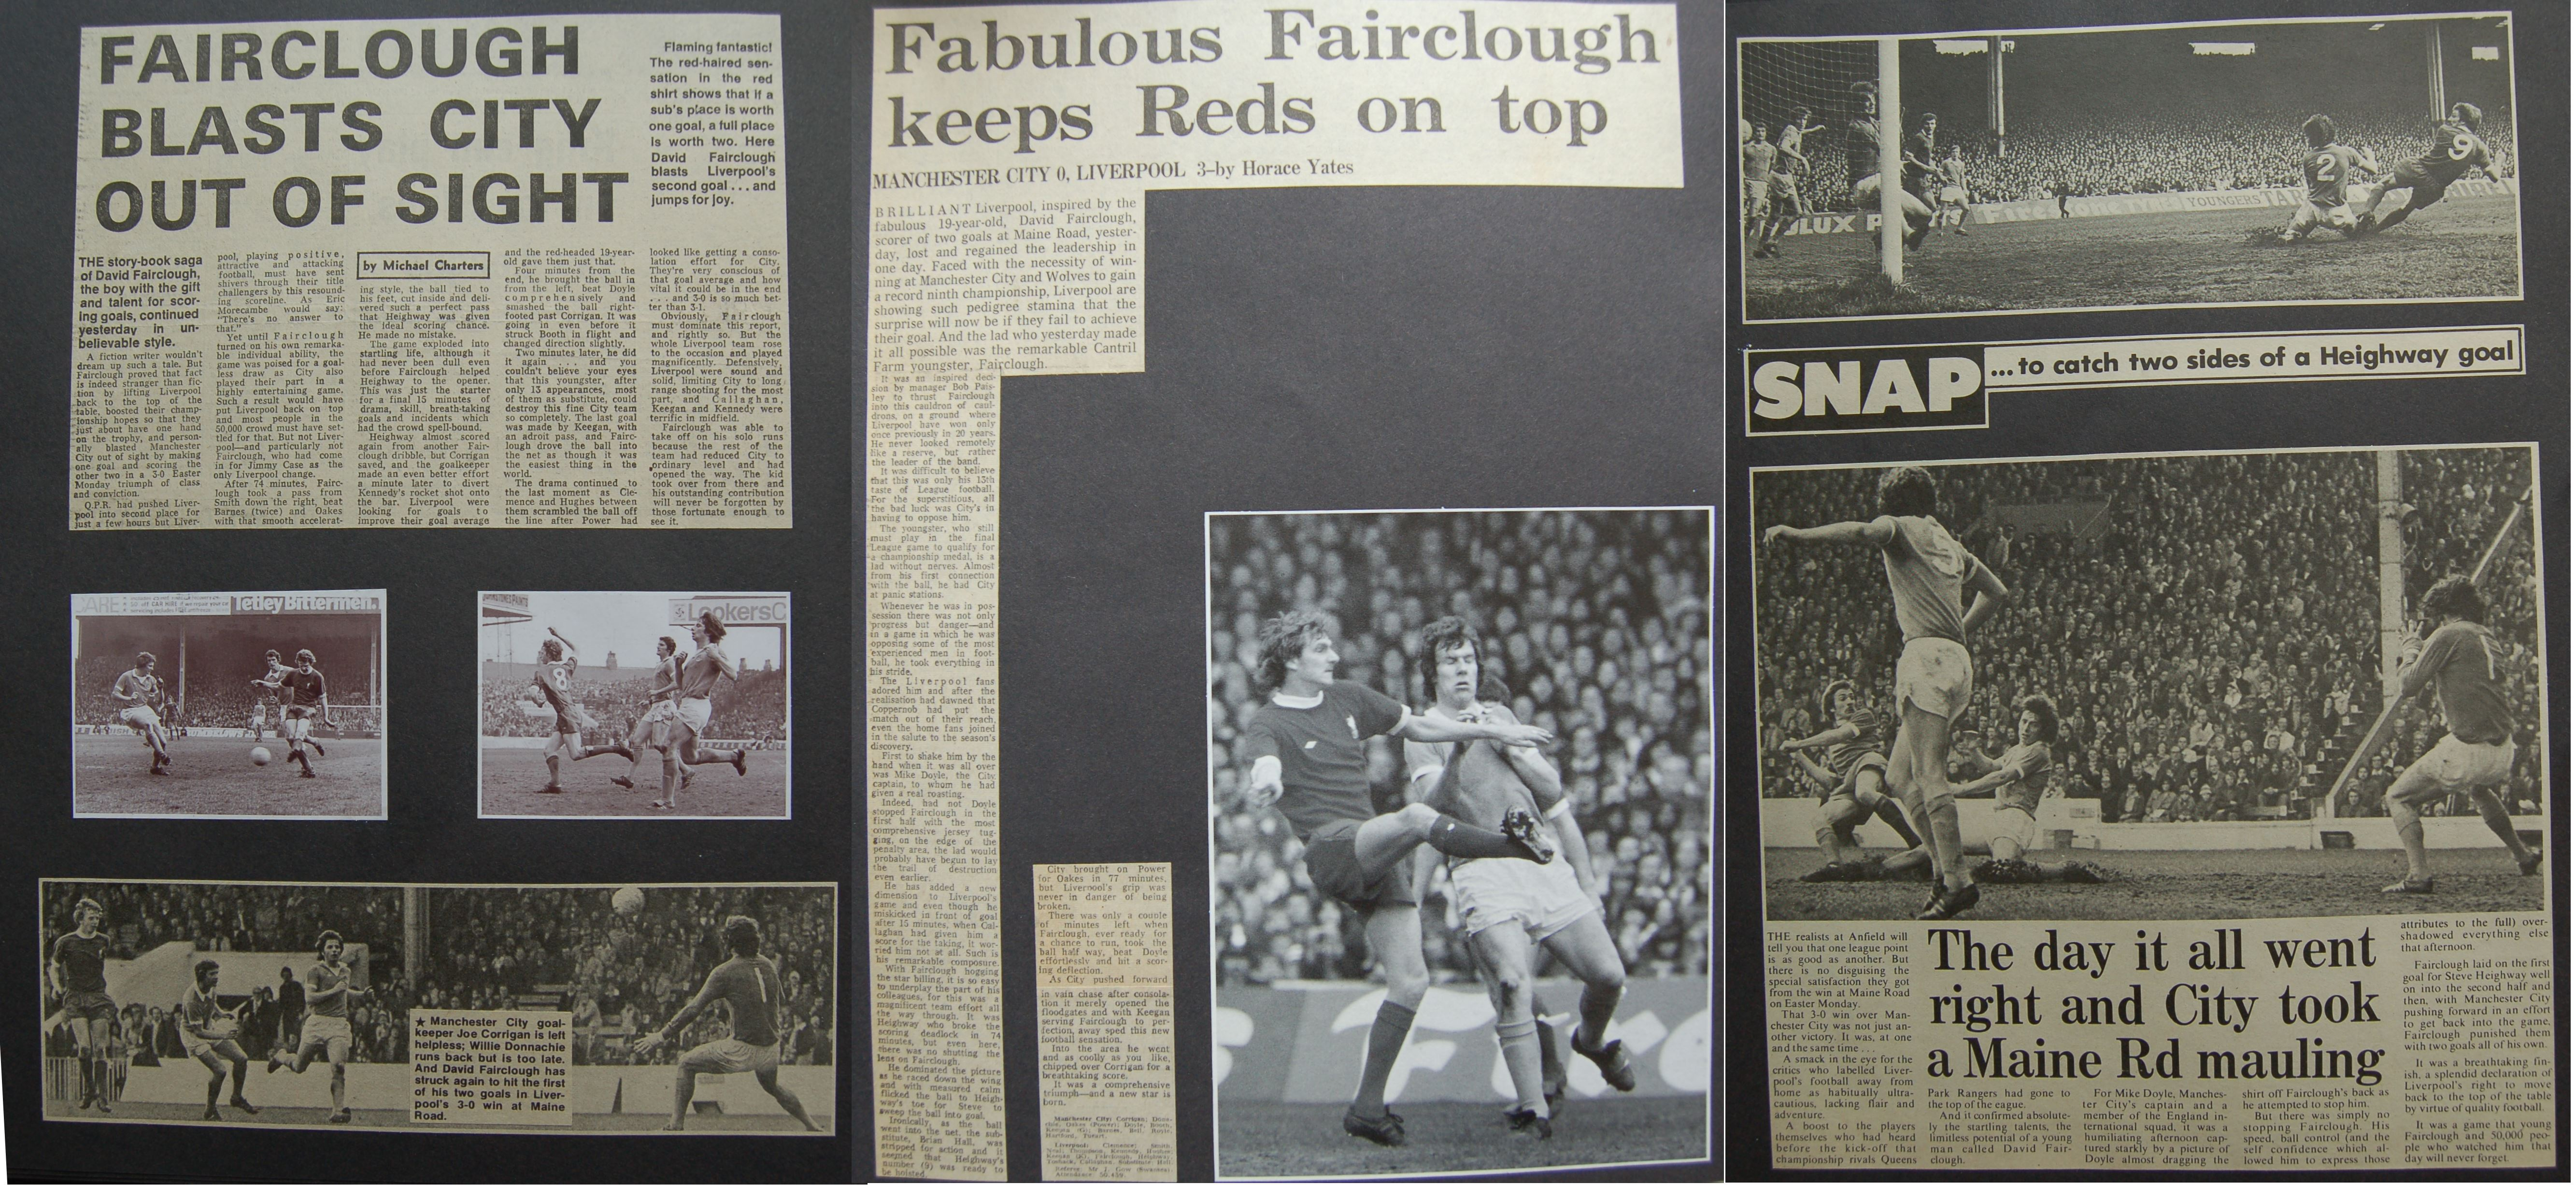 Fairclough blasts City out of sight - 19 April 1976